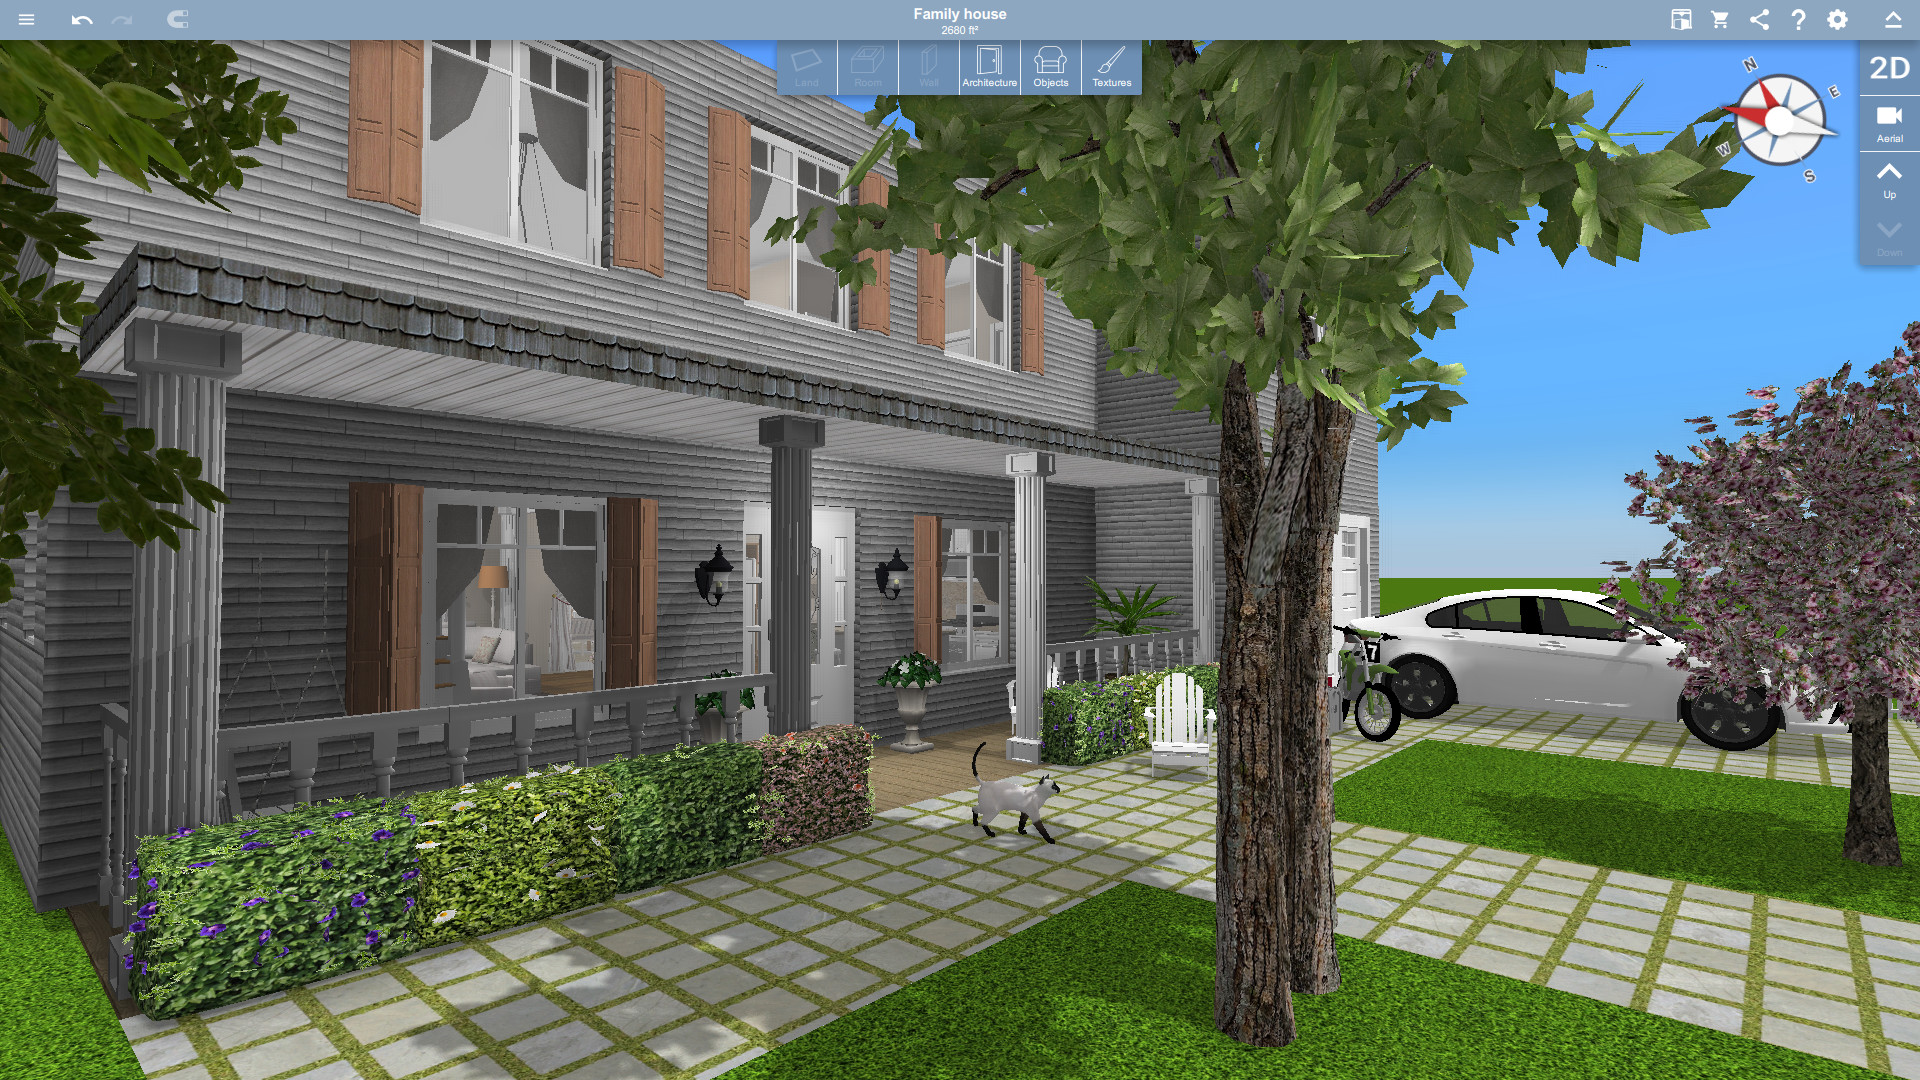 Save 75% on Home Design 3D on Steam